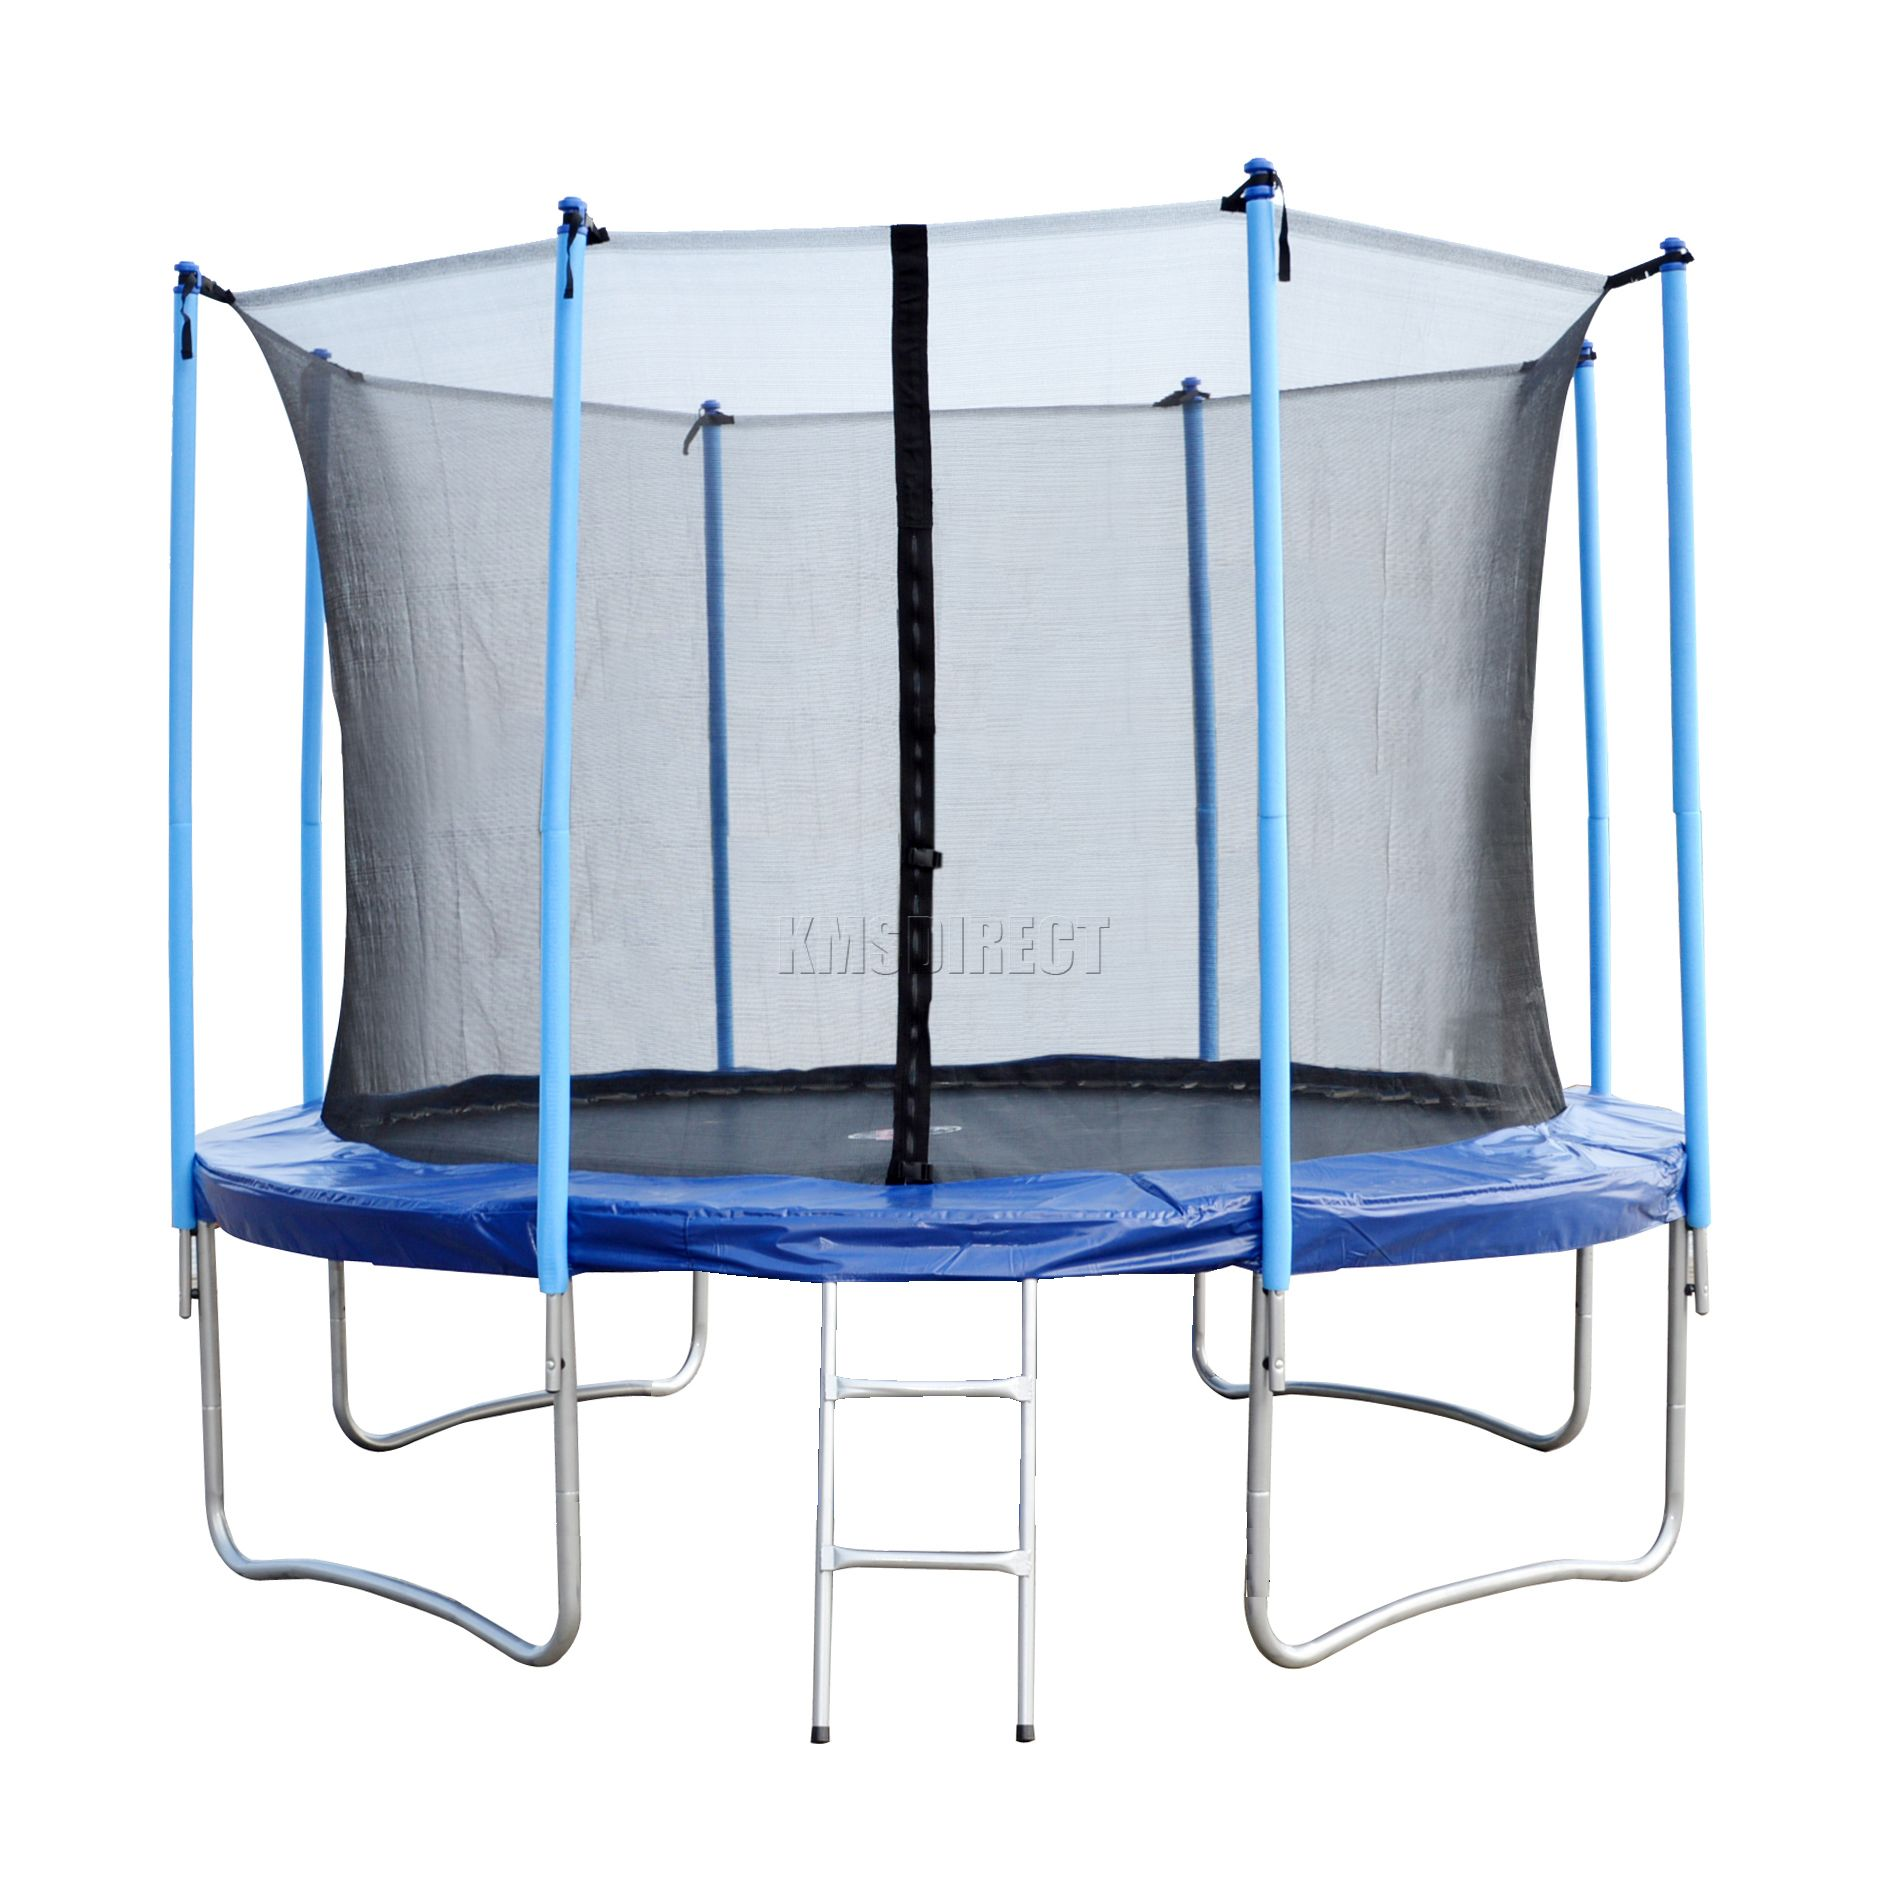 8FT 10FT 12FT 14FT 16FT Trampoline With Safety Enclosure